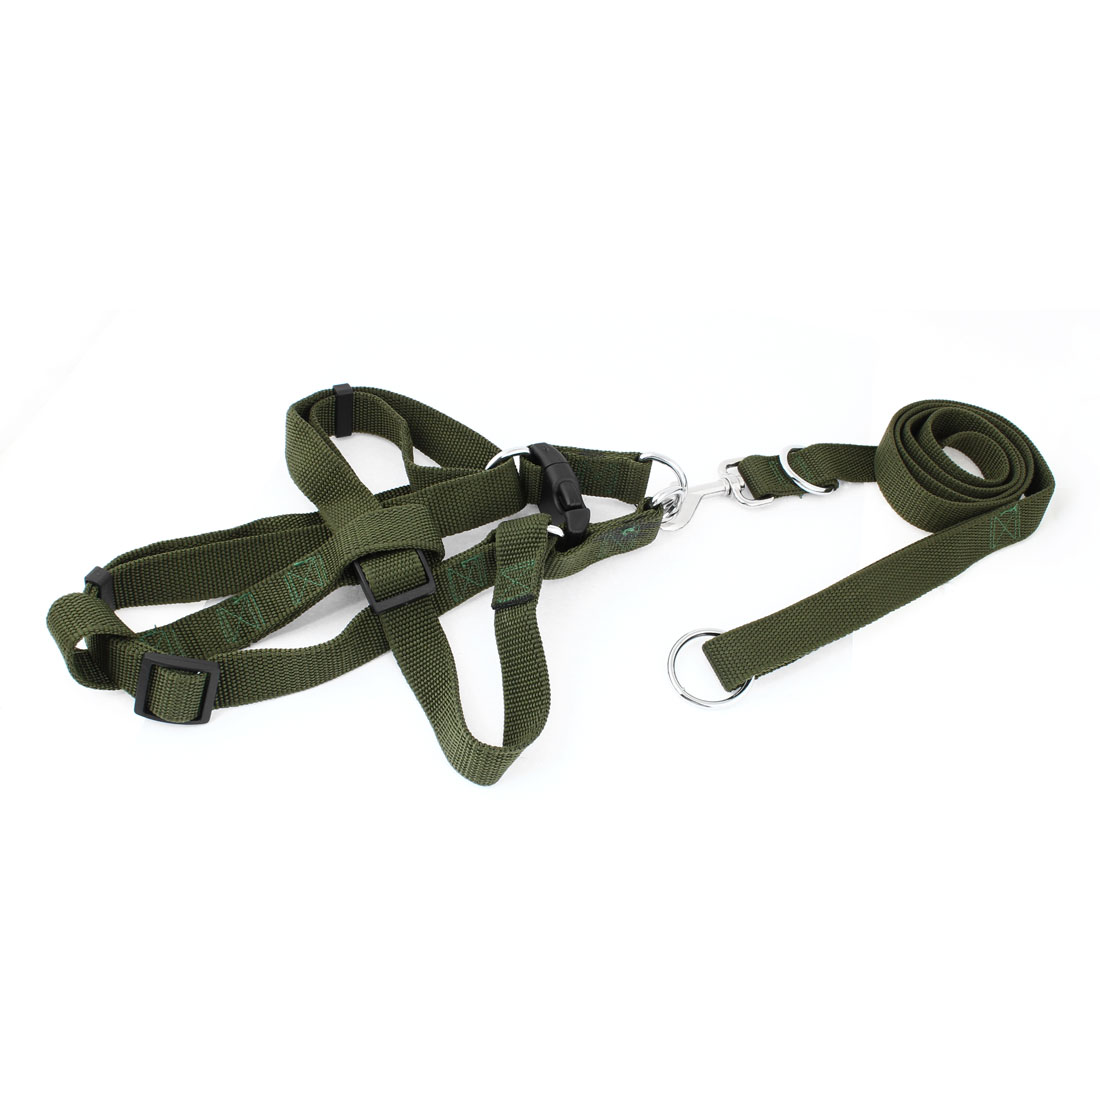 Pet Puppy Dog Adjustable Harness Halter Braided Army Green Leash